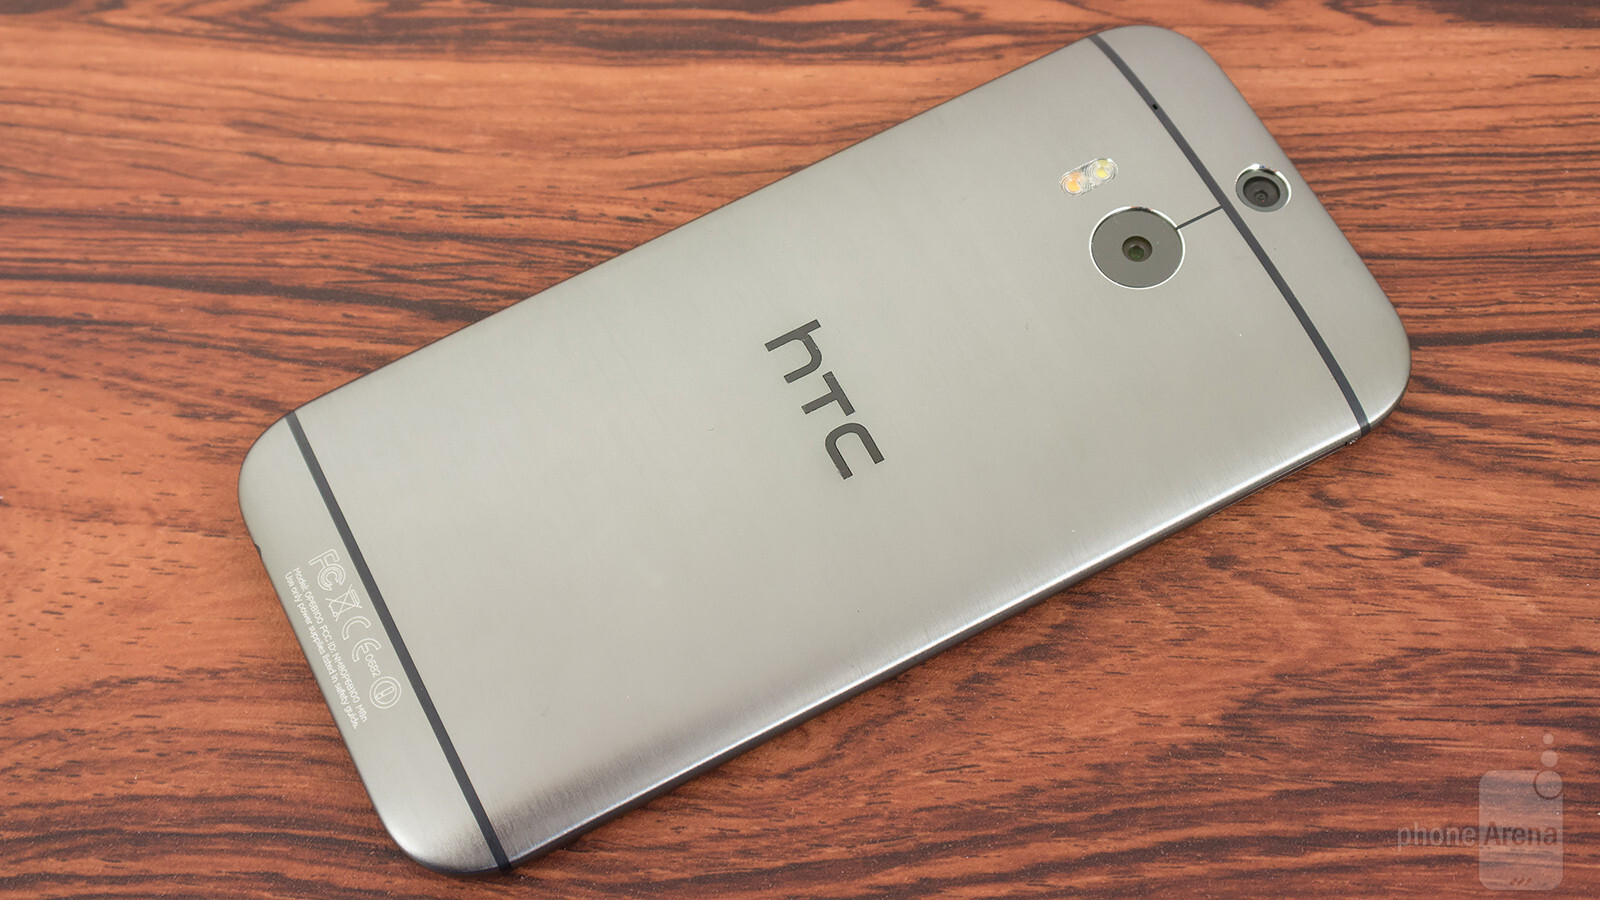 The UltraPixel camera on the HTC One (M8)